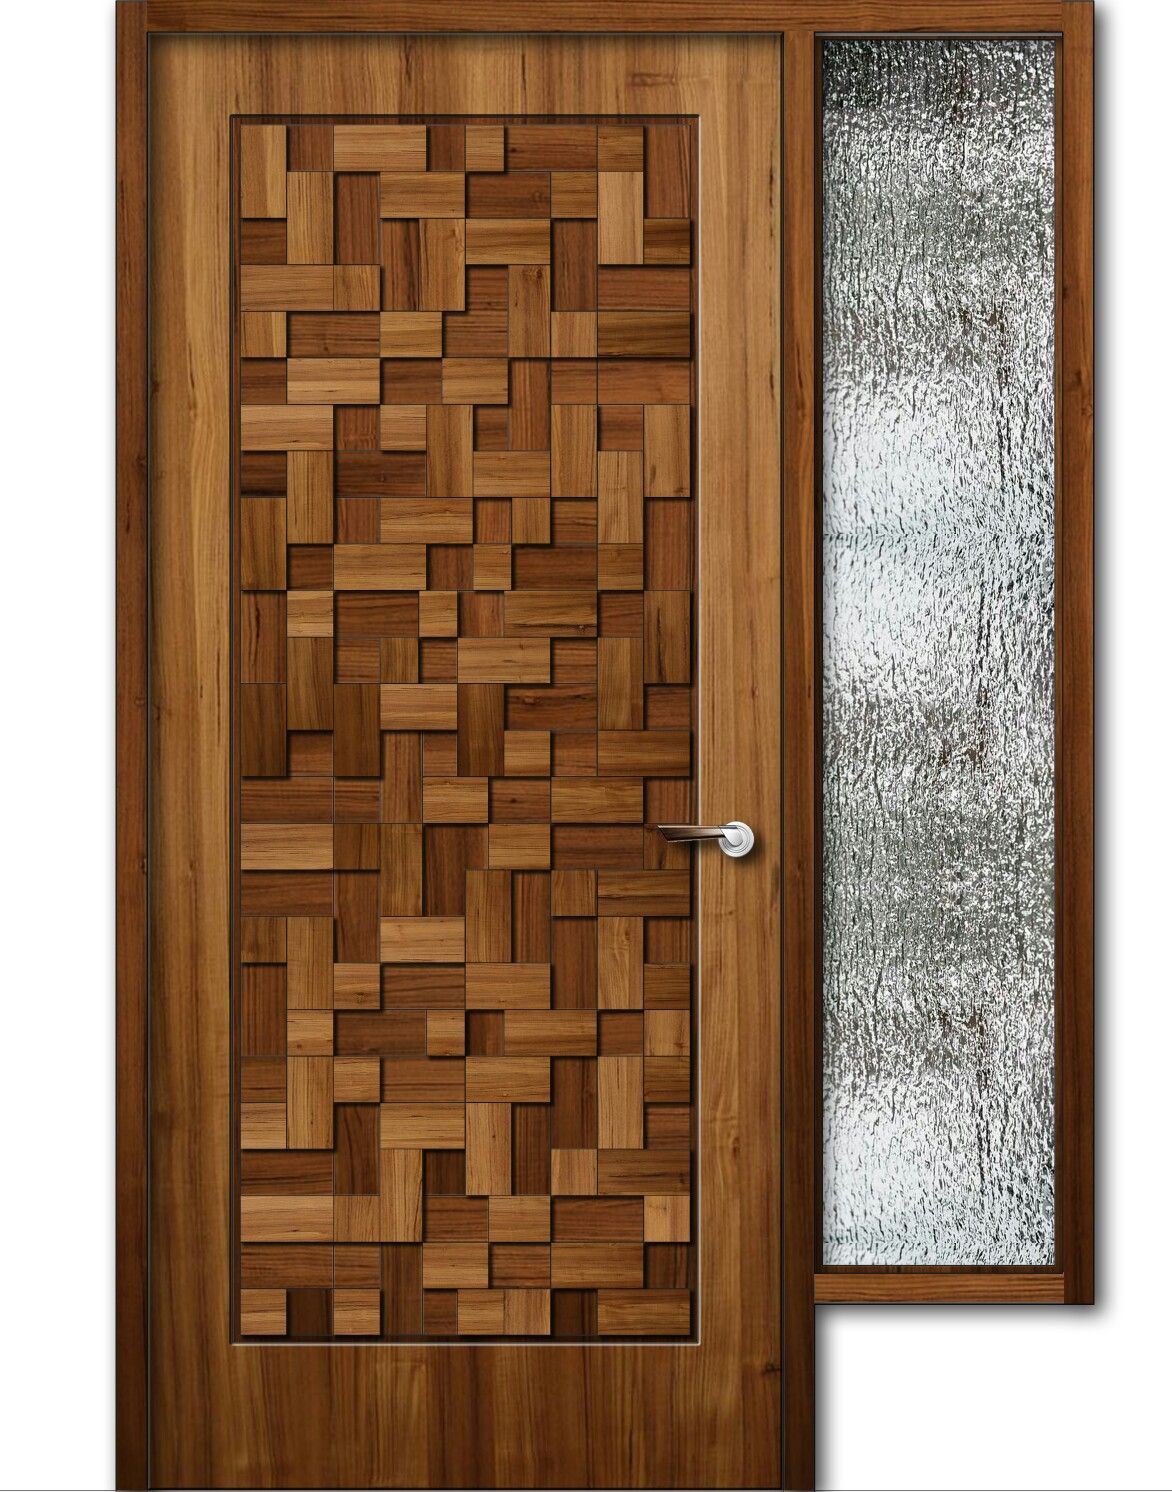 Teak wood finish wooden door with window 8feet height for Wooden door designs for main door